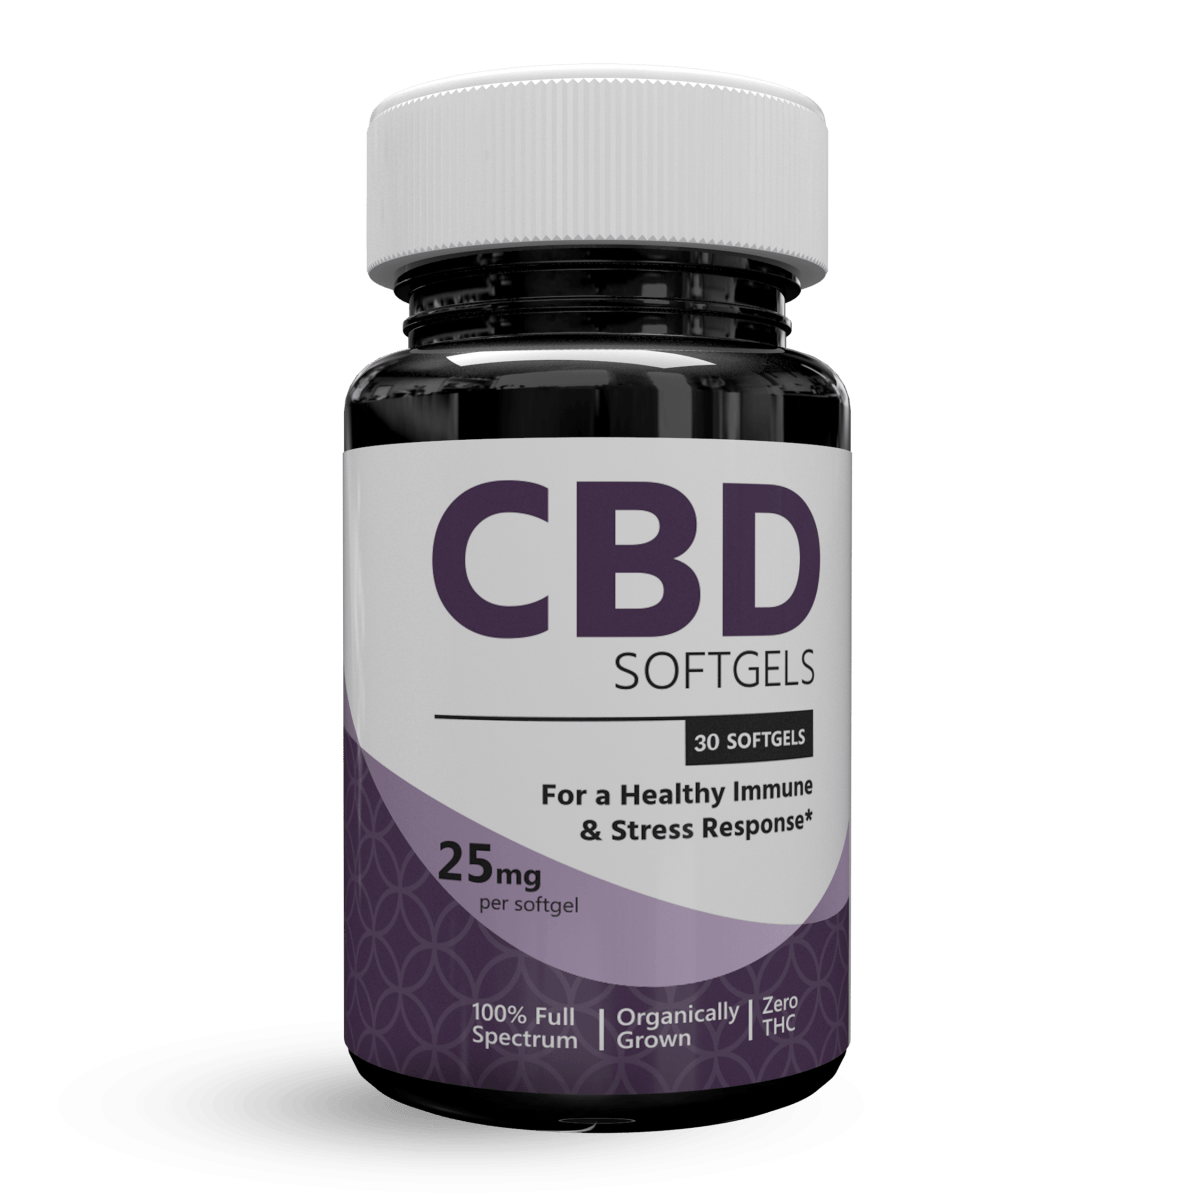 Hempure CBD Softgels